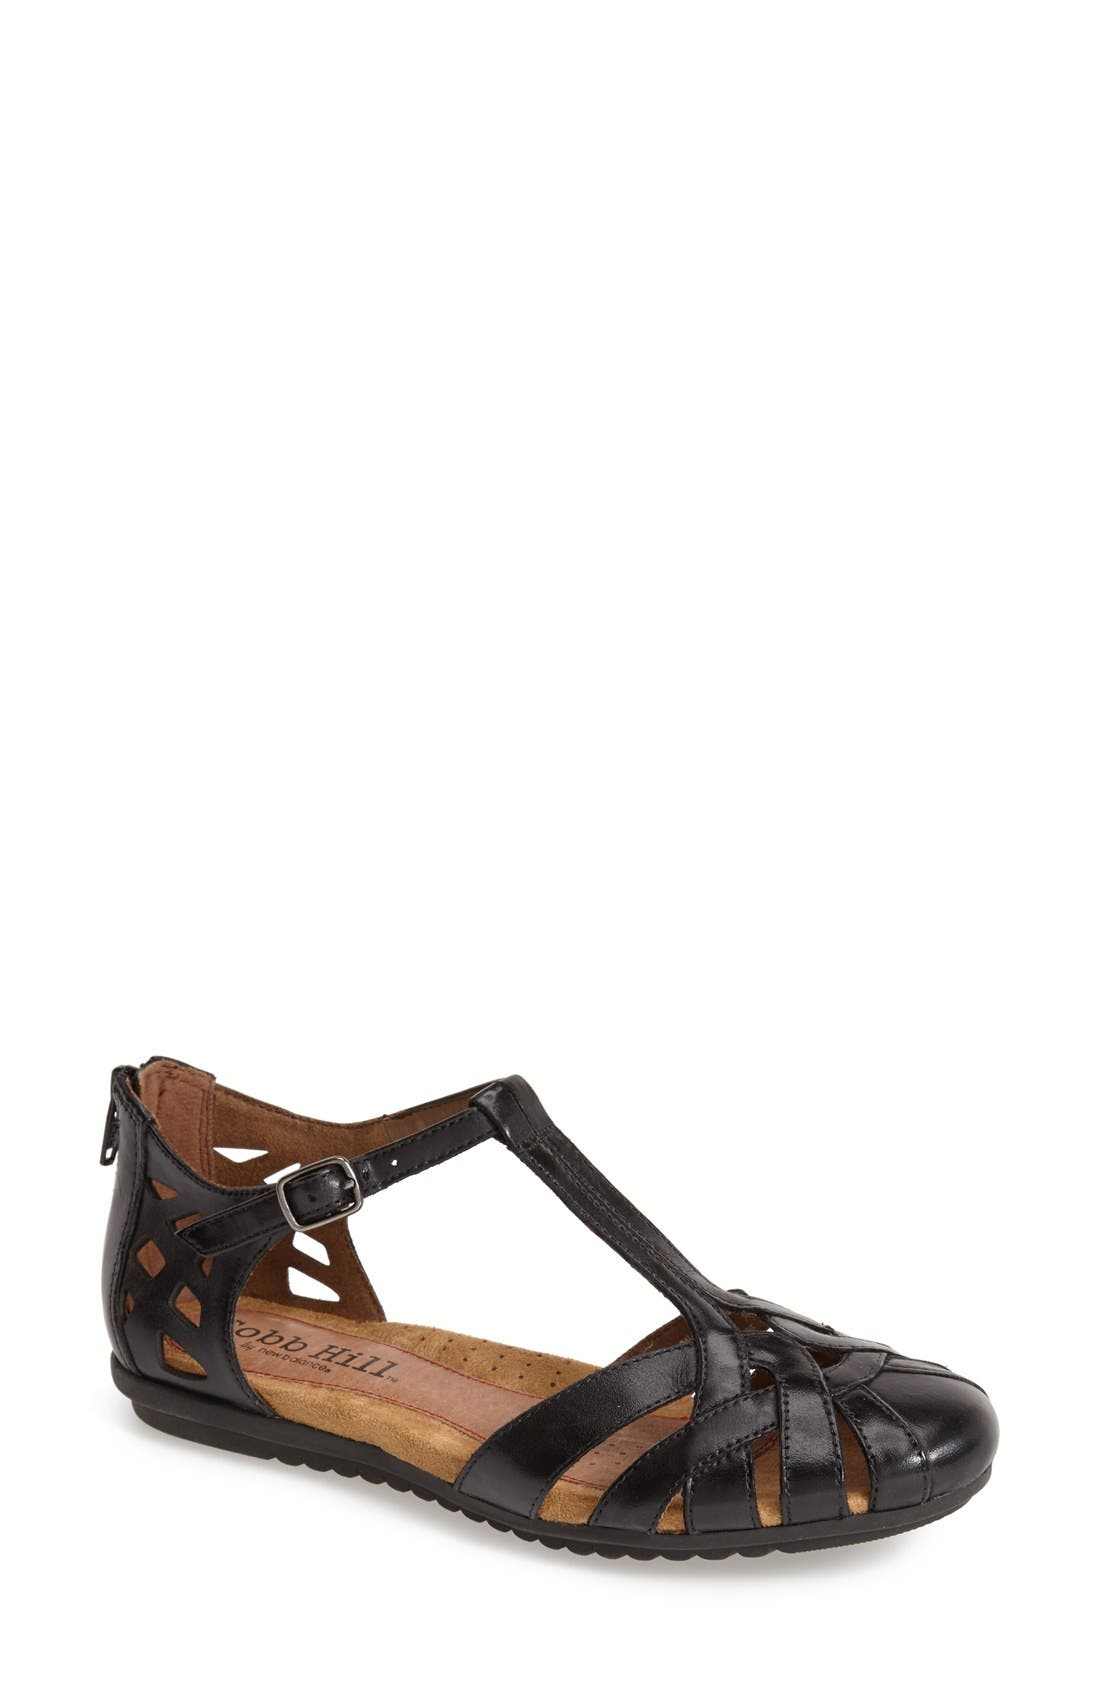 'Ireland' Leather Sandal,                             Main thumbnail 1, color,                             BLACK